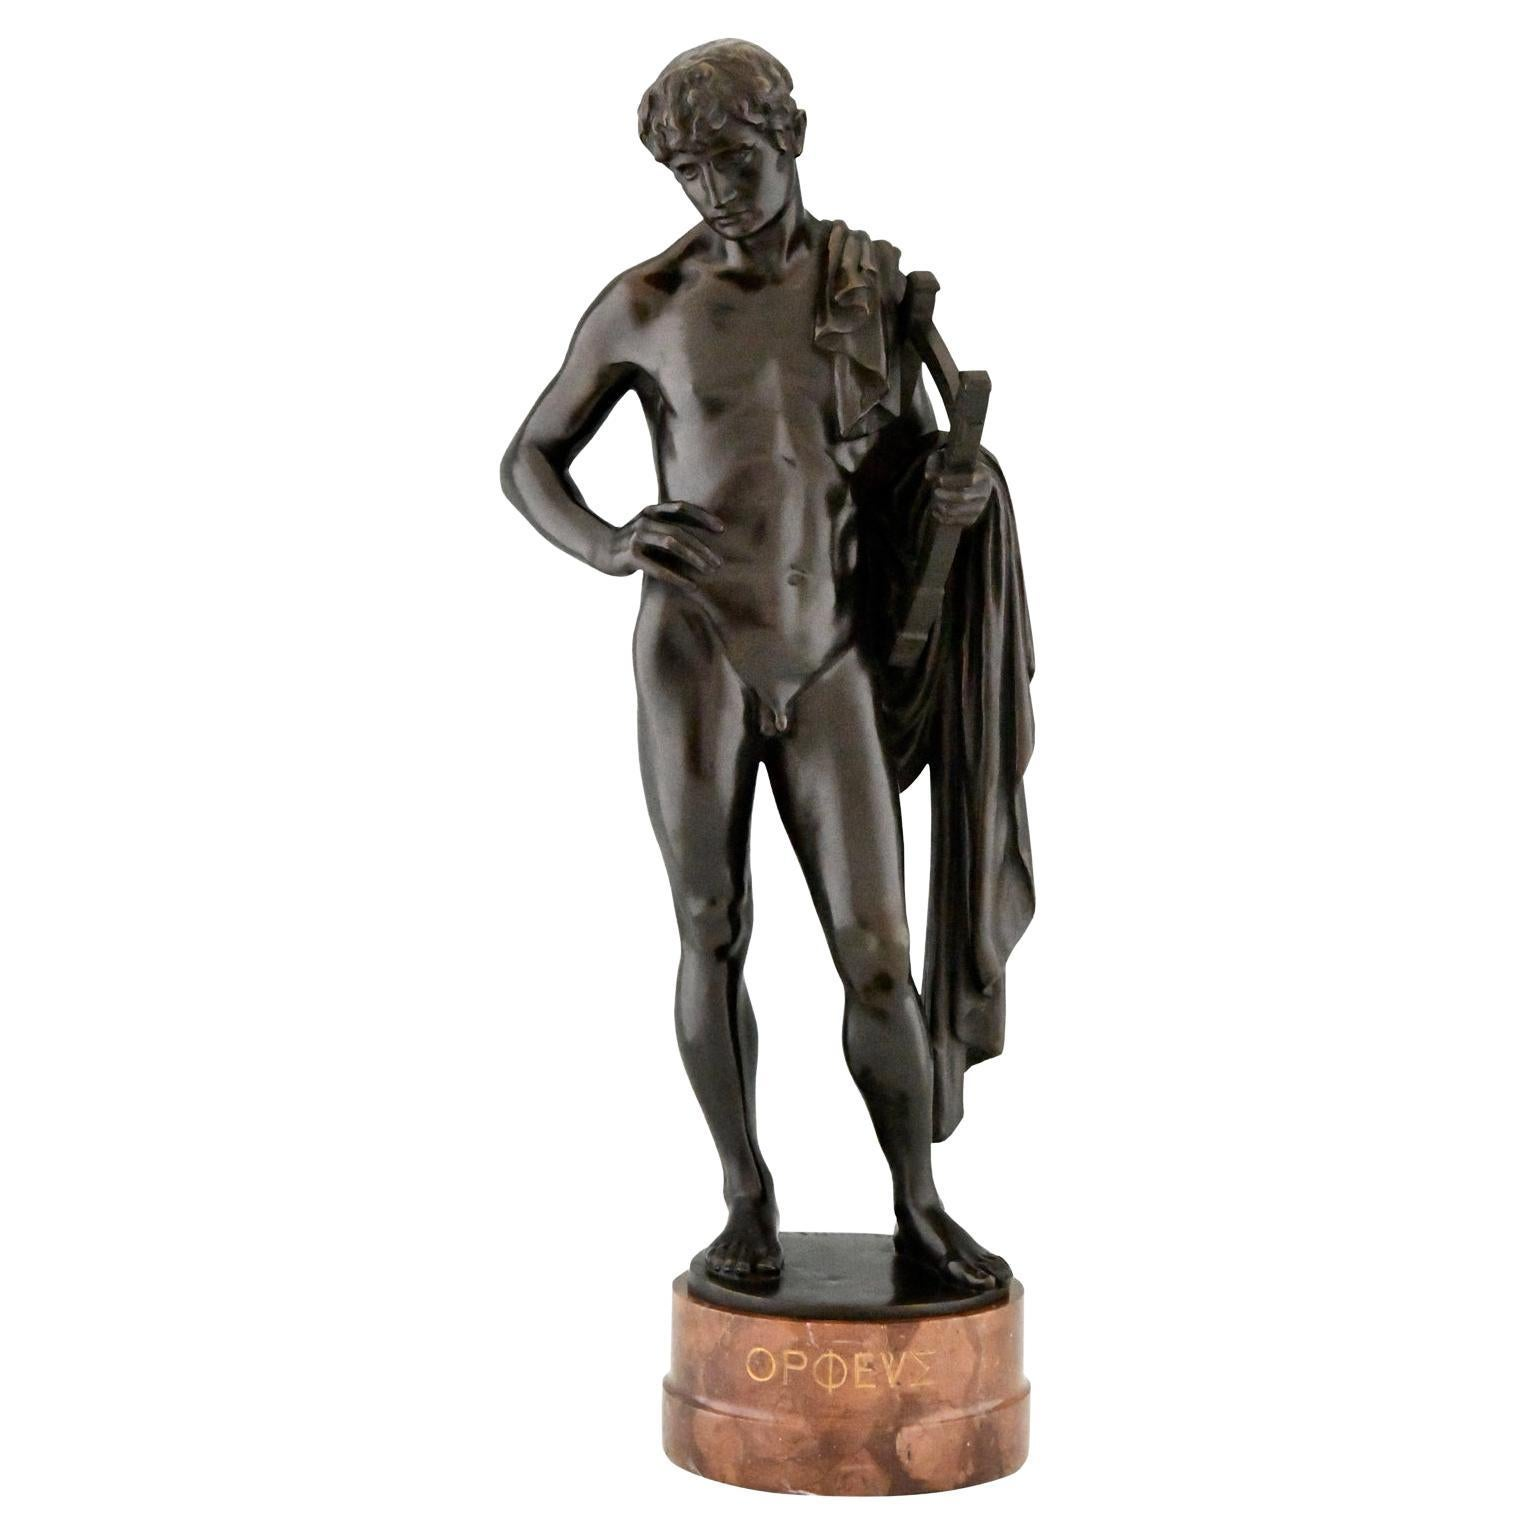 Orpheus Antique Bronze Sculpture of a Male Nude with Lyre by George Mattes 1900